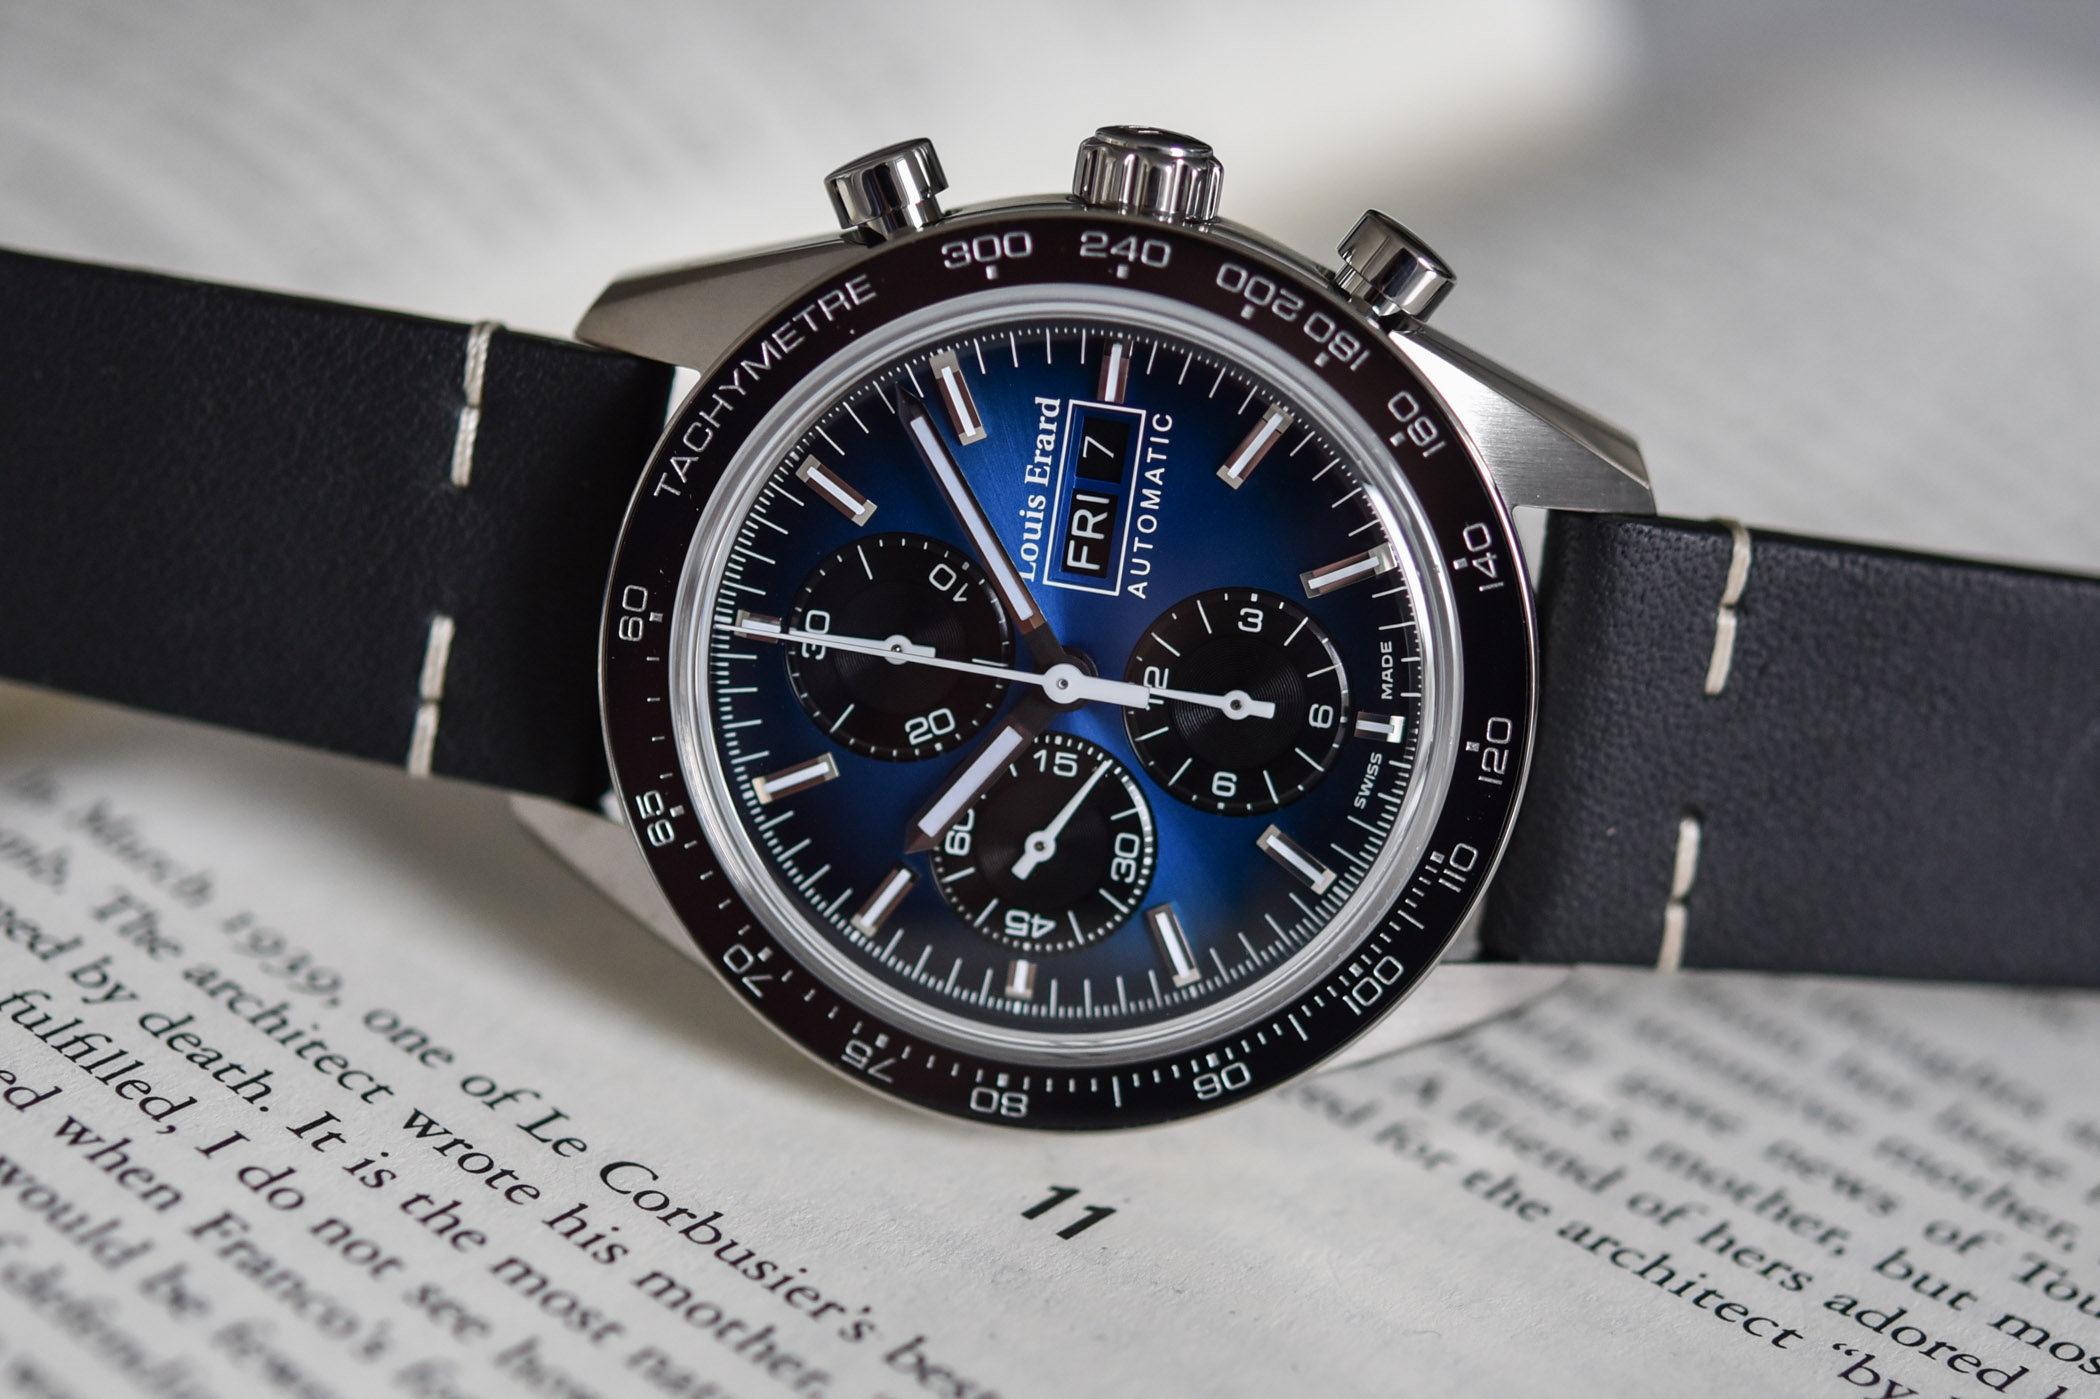 Louis Erard La Sportive Limited Edition Chronographs